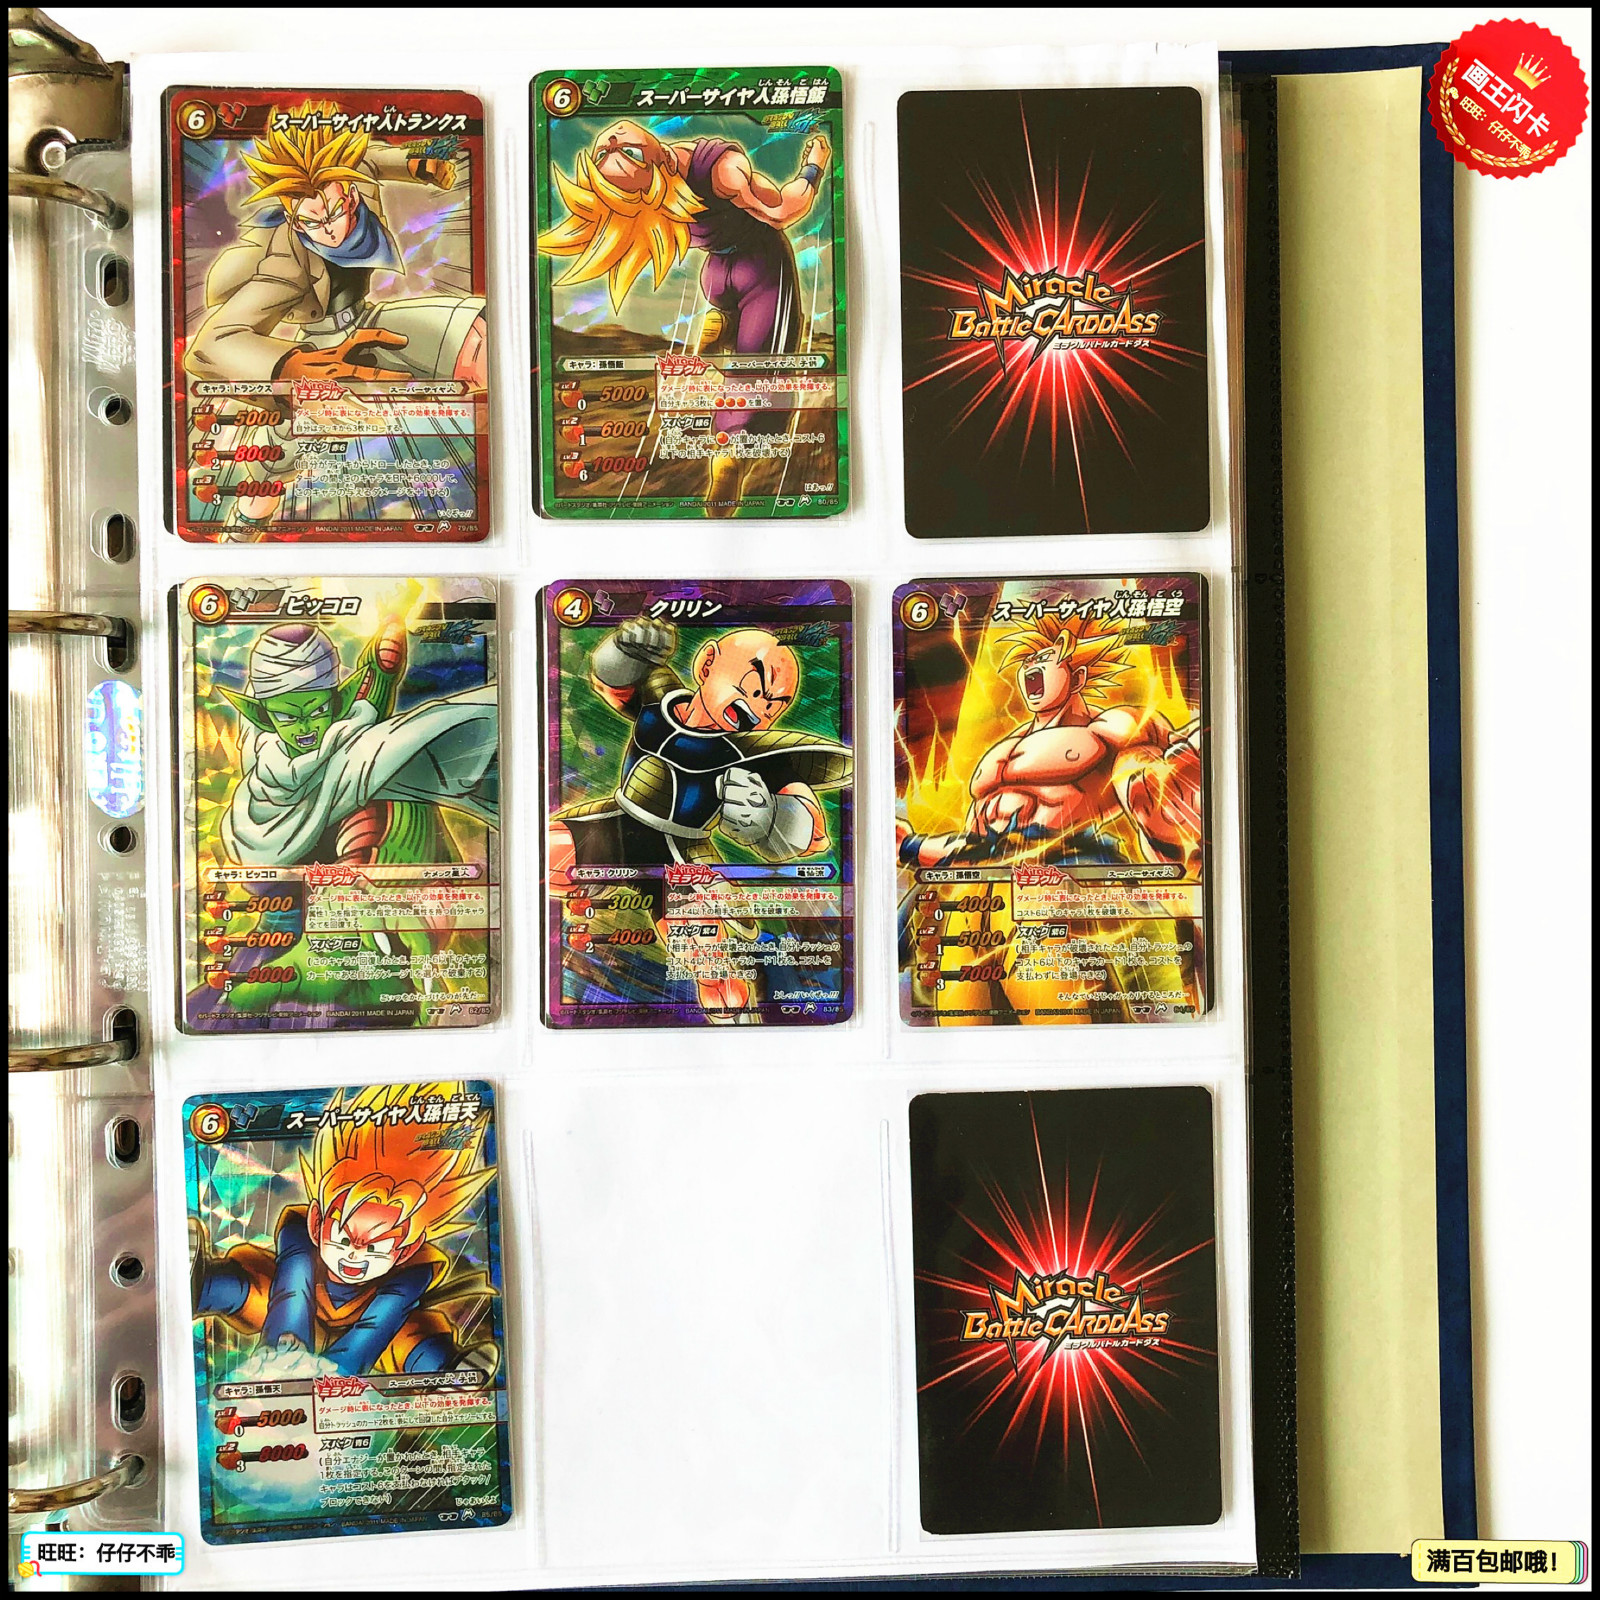 Japan Original Dragon Ball Hero MBC Super Saiyan Goku Piccolo Son Goten Toys Hobbies Collectibles Game Collection Anime Cards